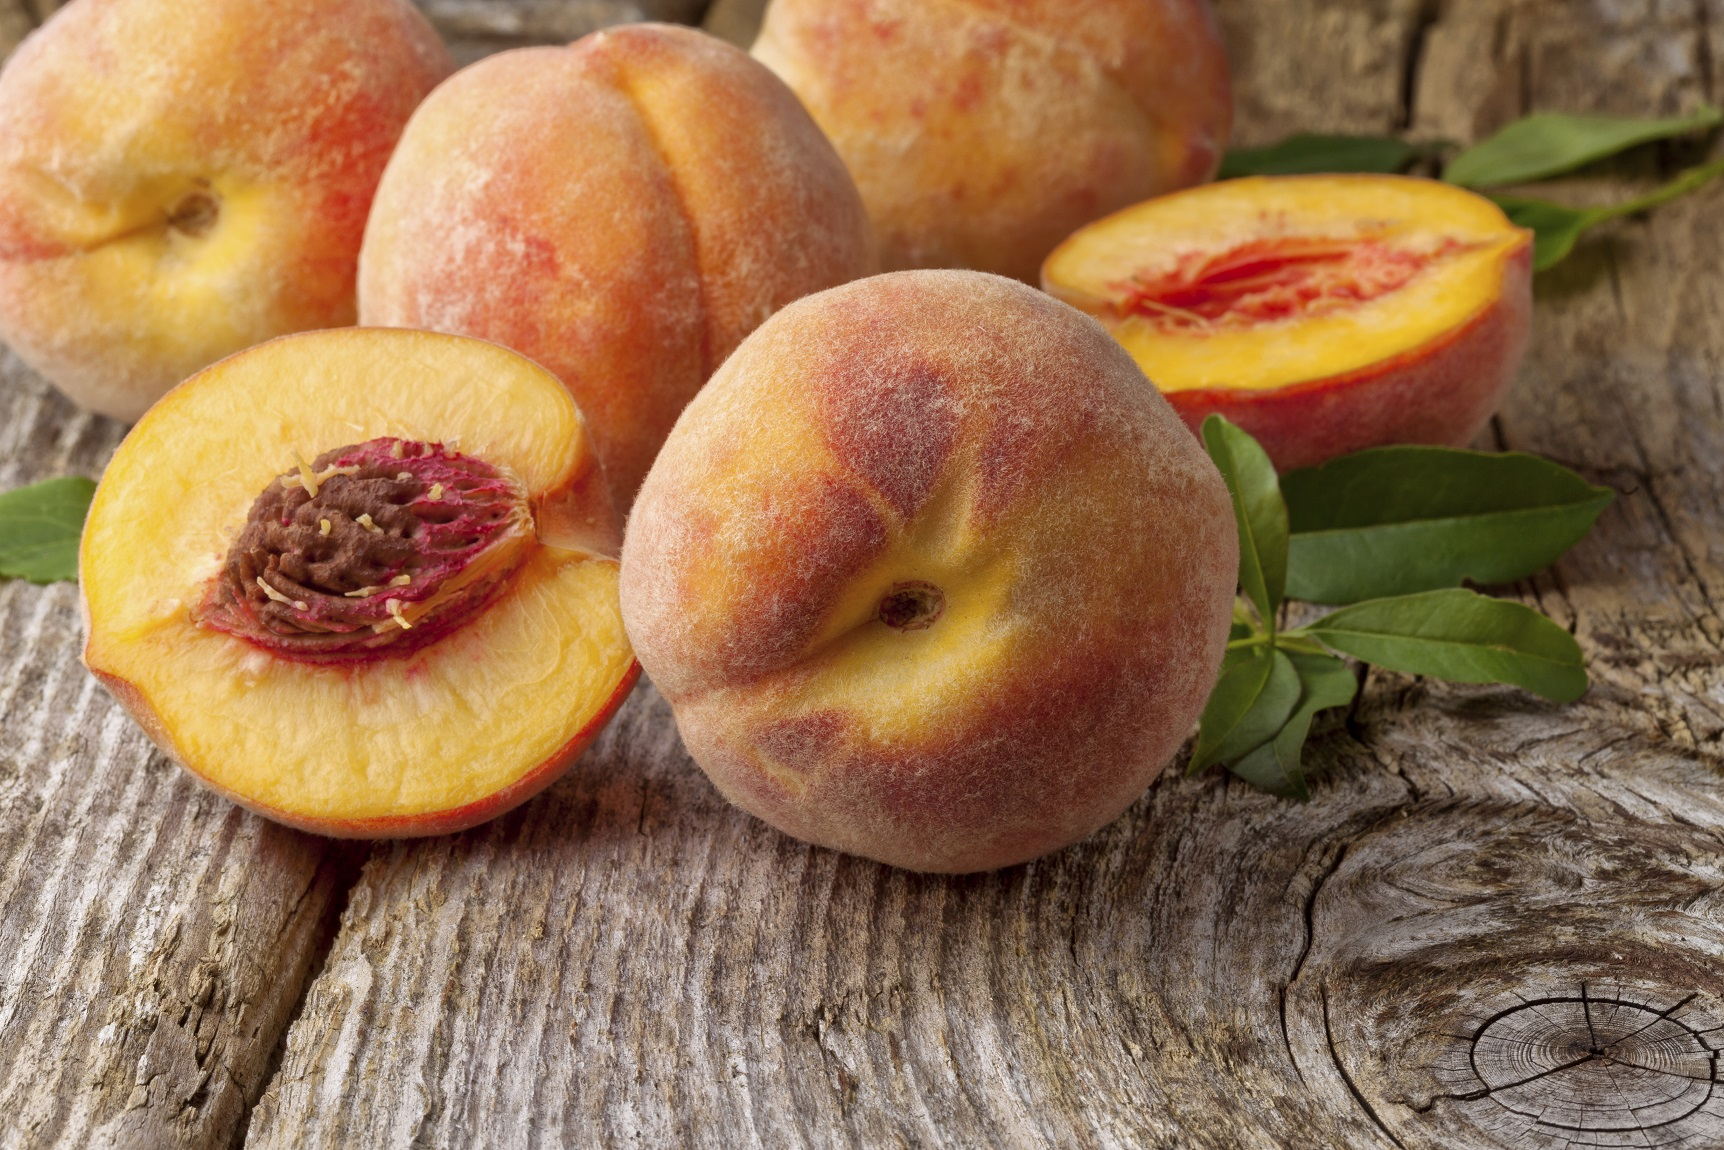 Radiate a Healthy Glow with this DIY Peach Facial Mask